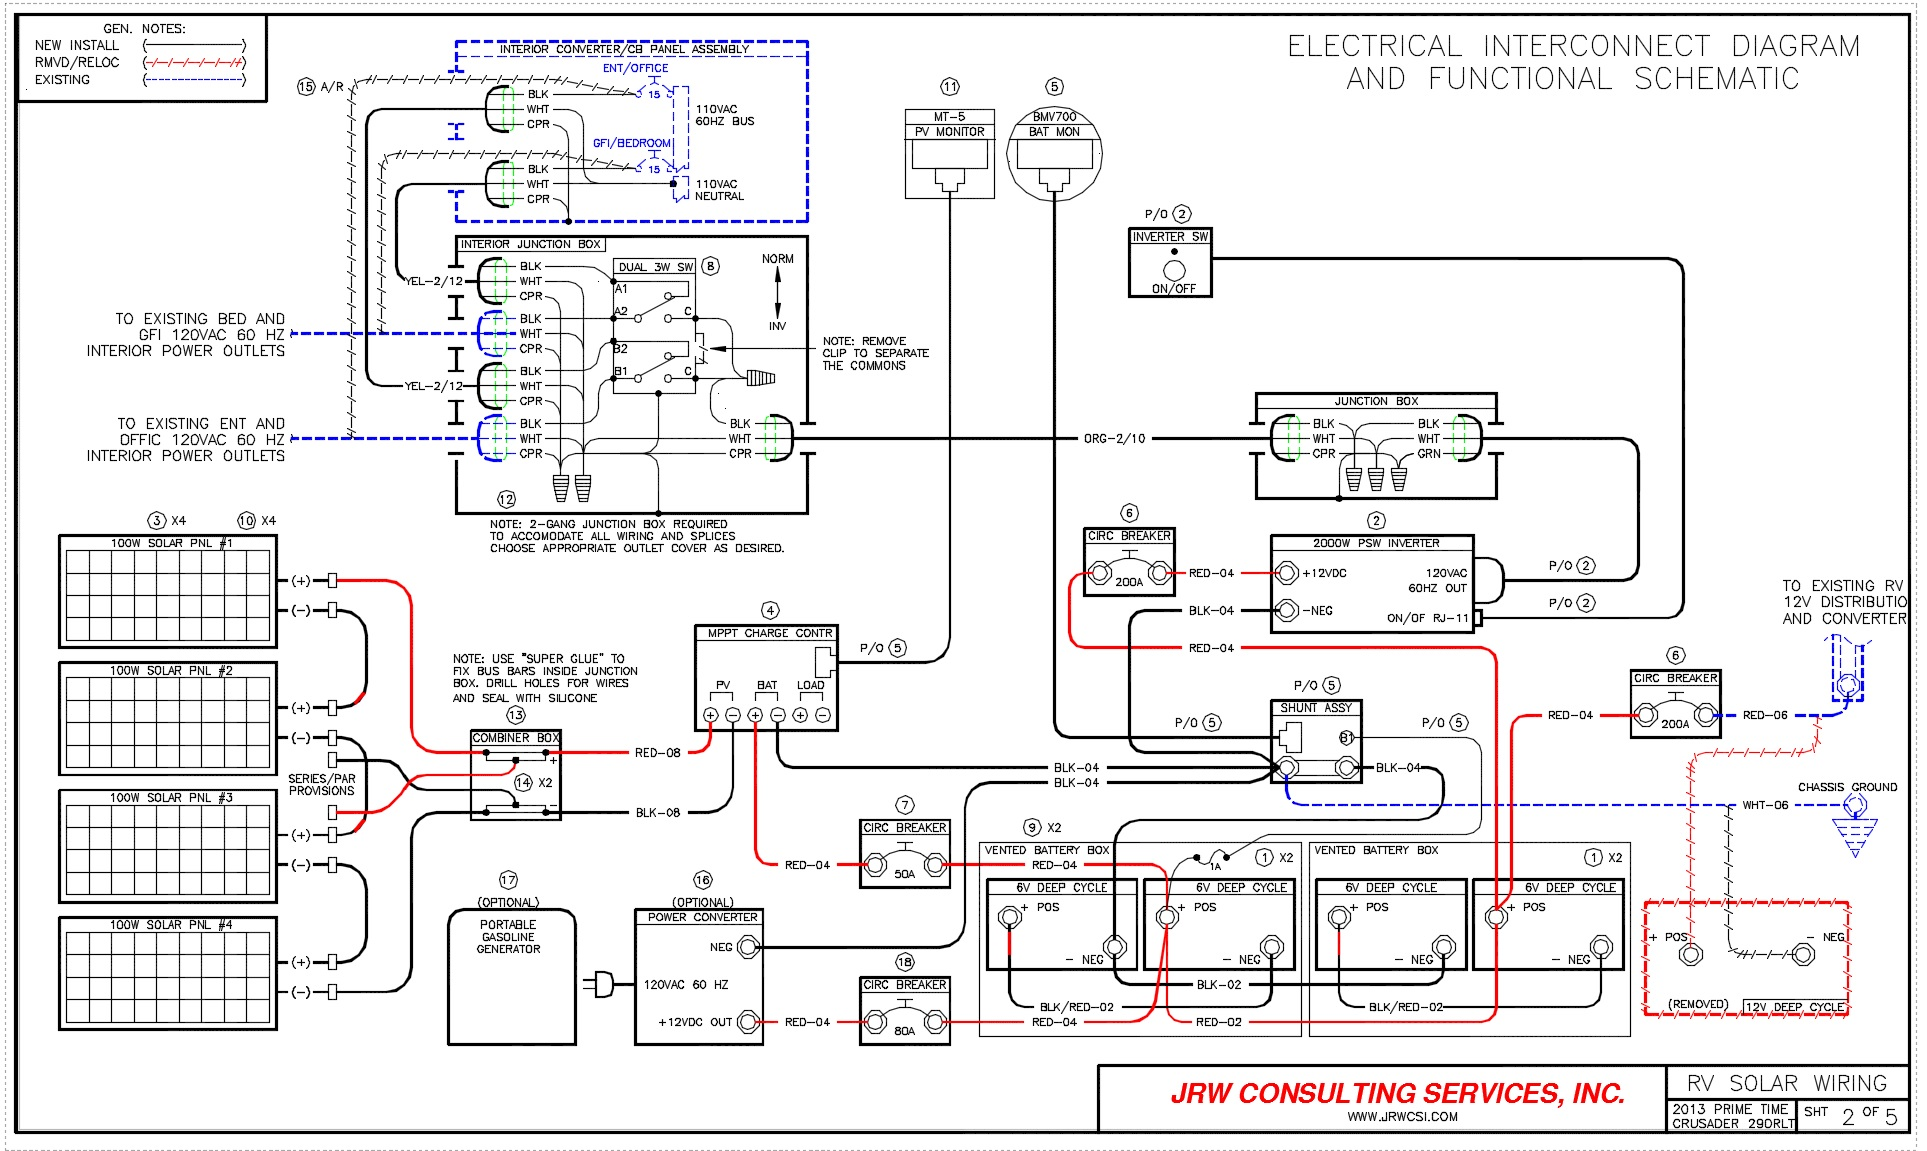 RV SOLAR SHT 22 rv power upgrade live, breathe, move rv power converter wiring diagrams at fashall.co